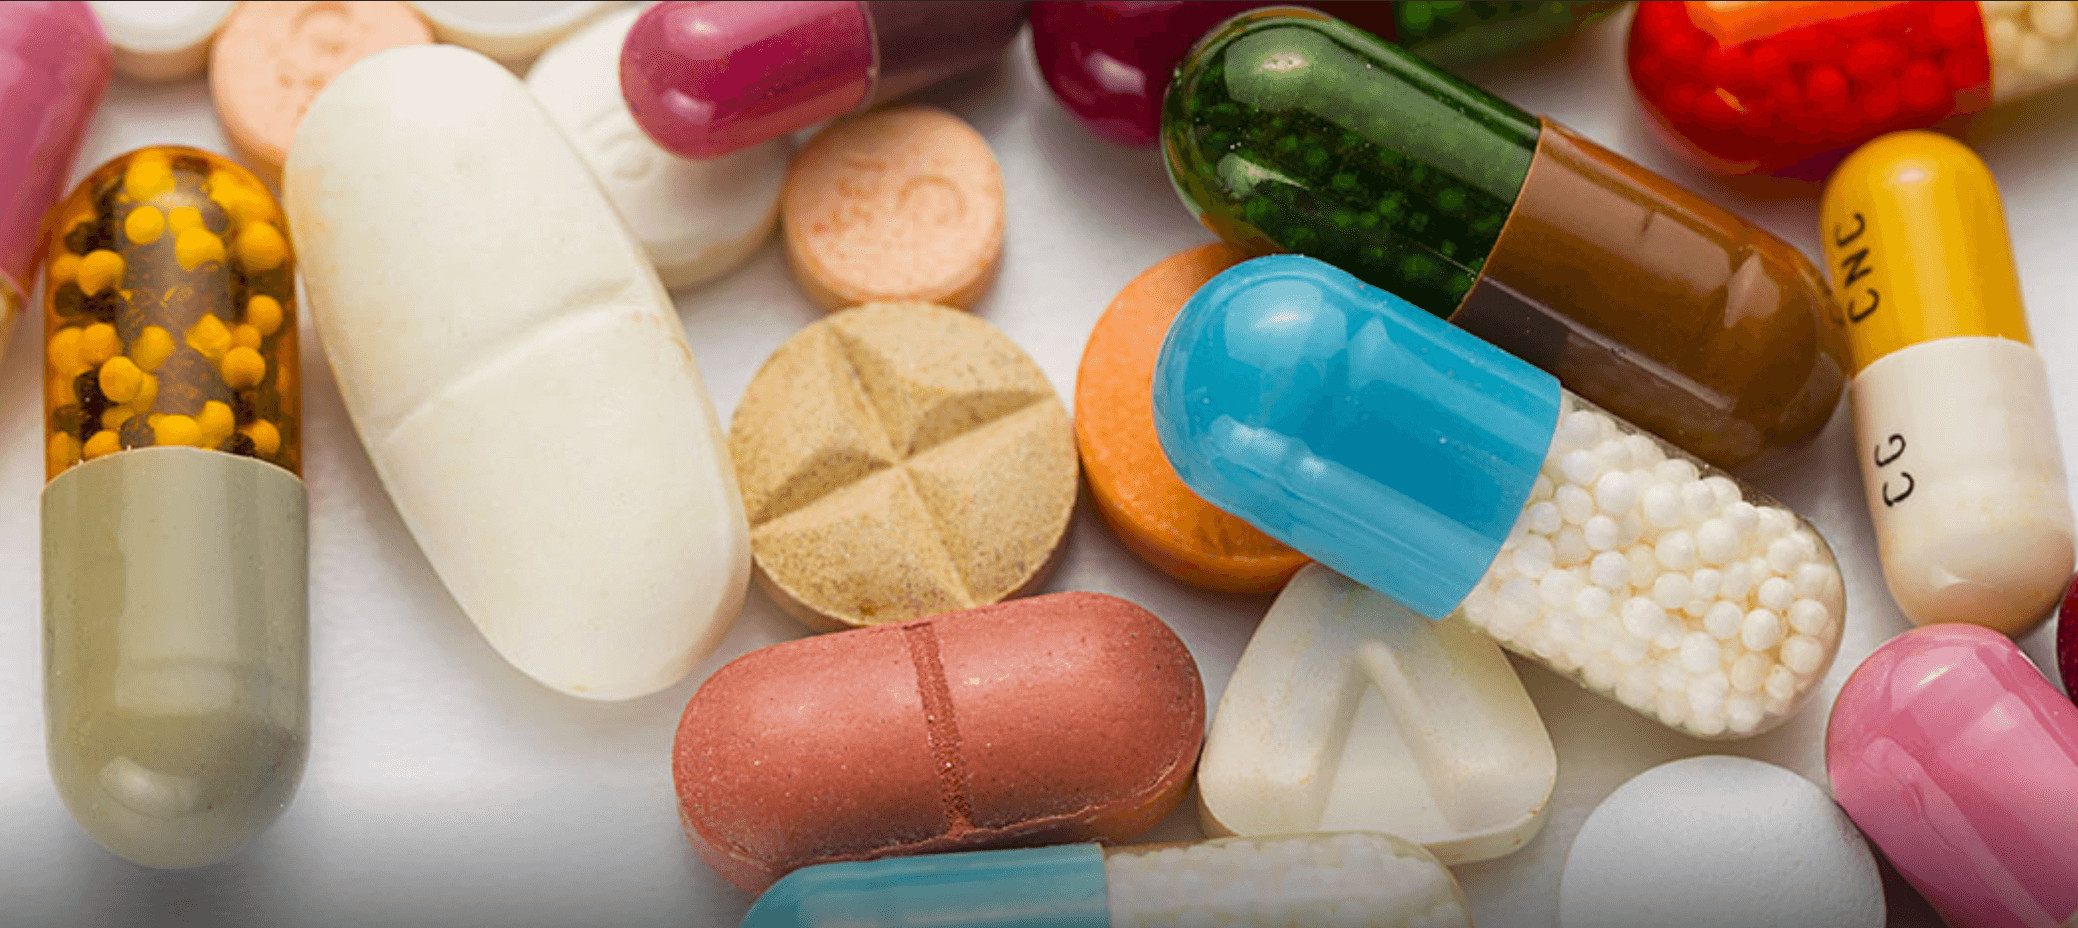 Nepal must allow foreign investment in pharmaceuticals